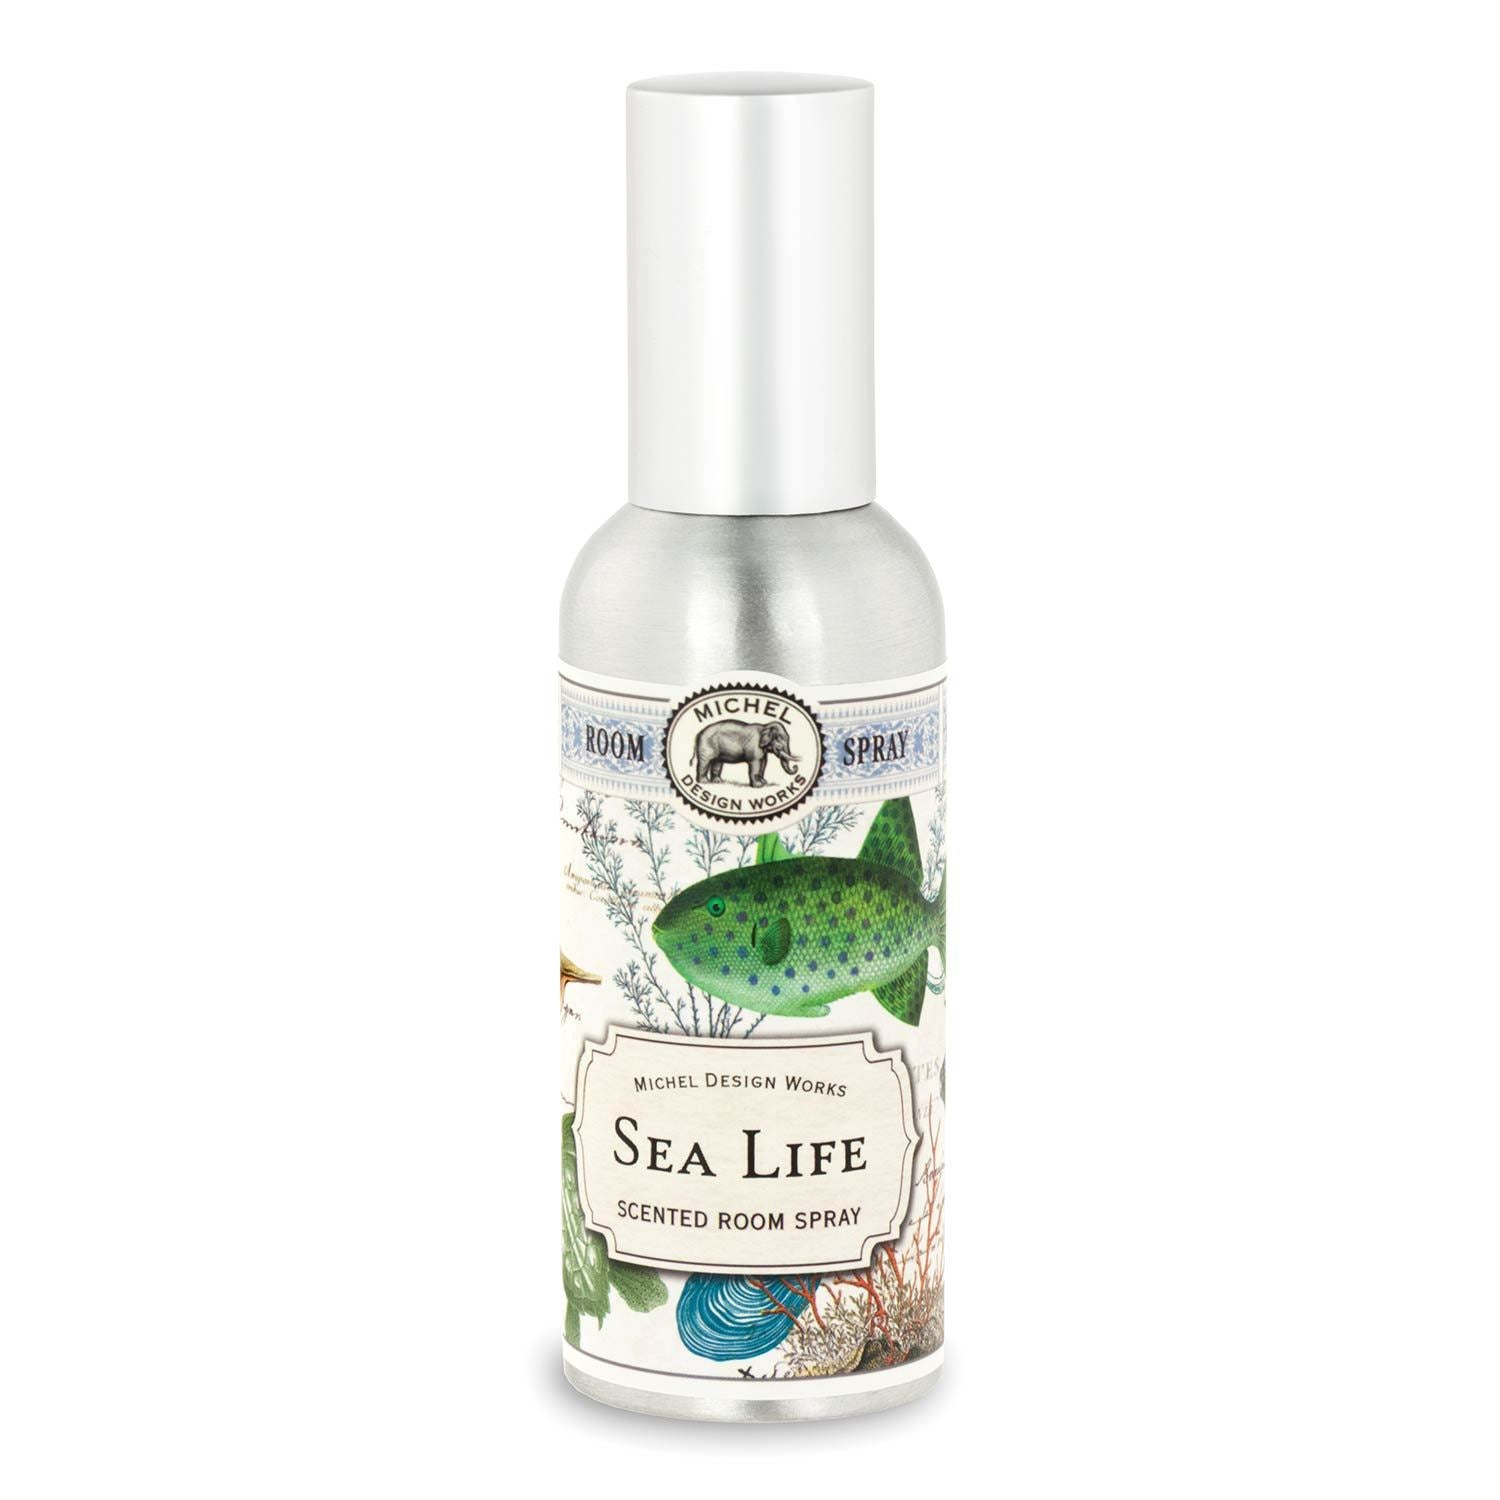 Sea Life Room Spray